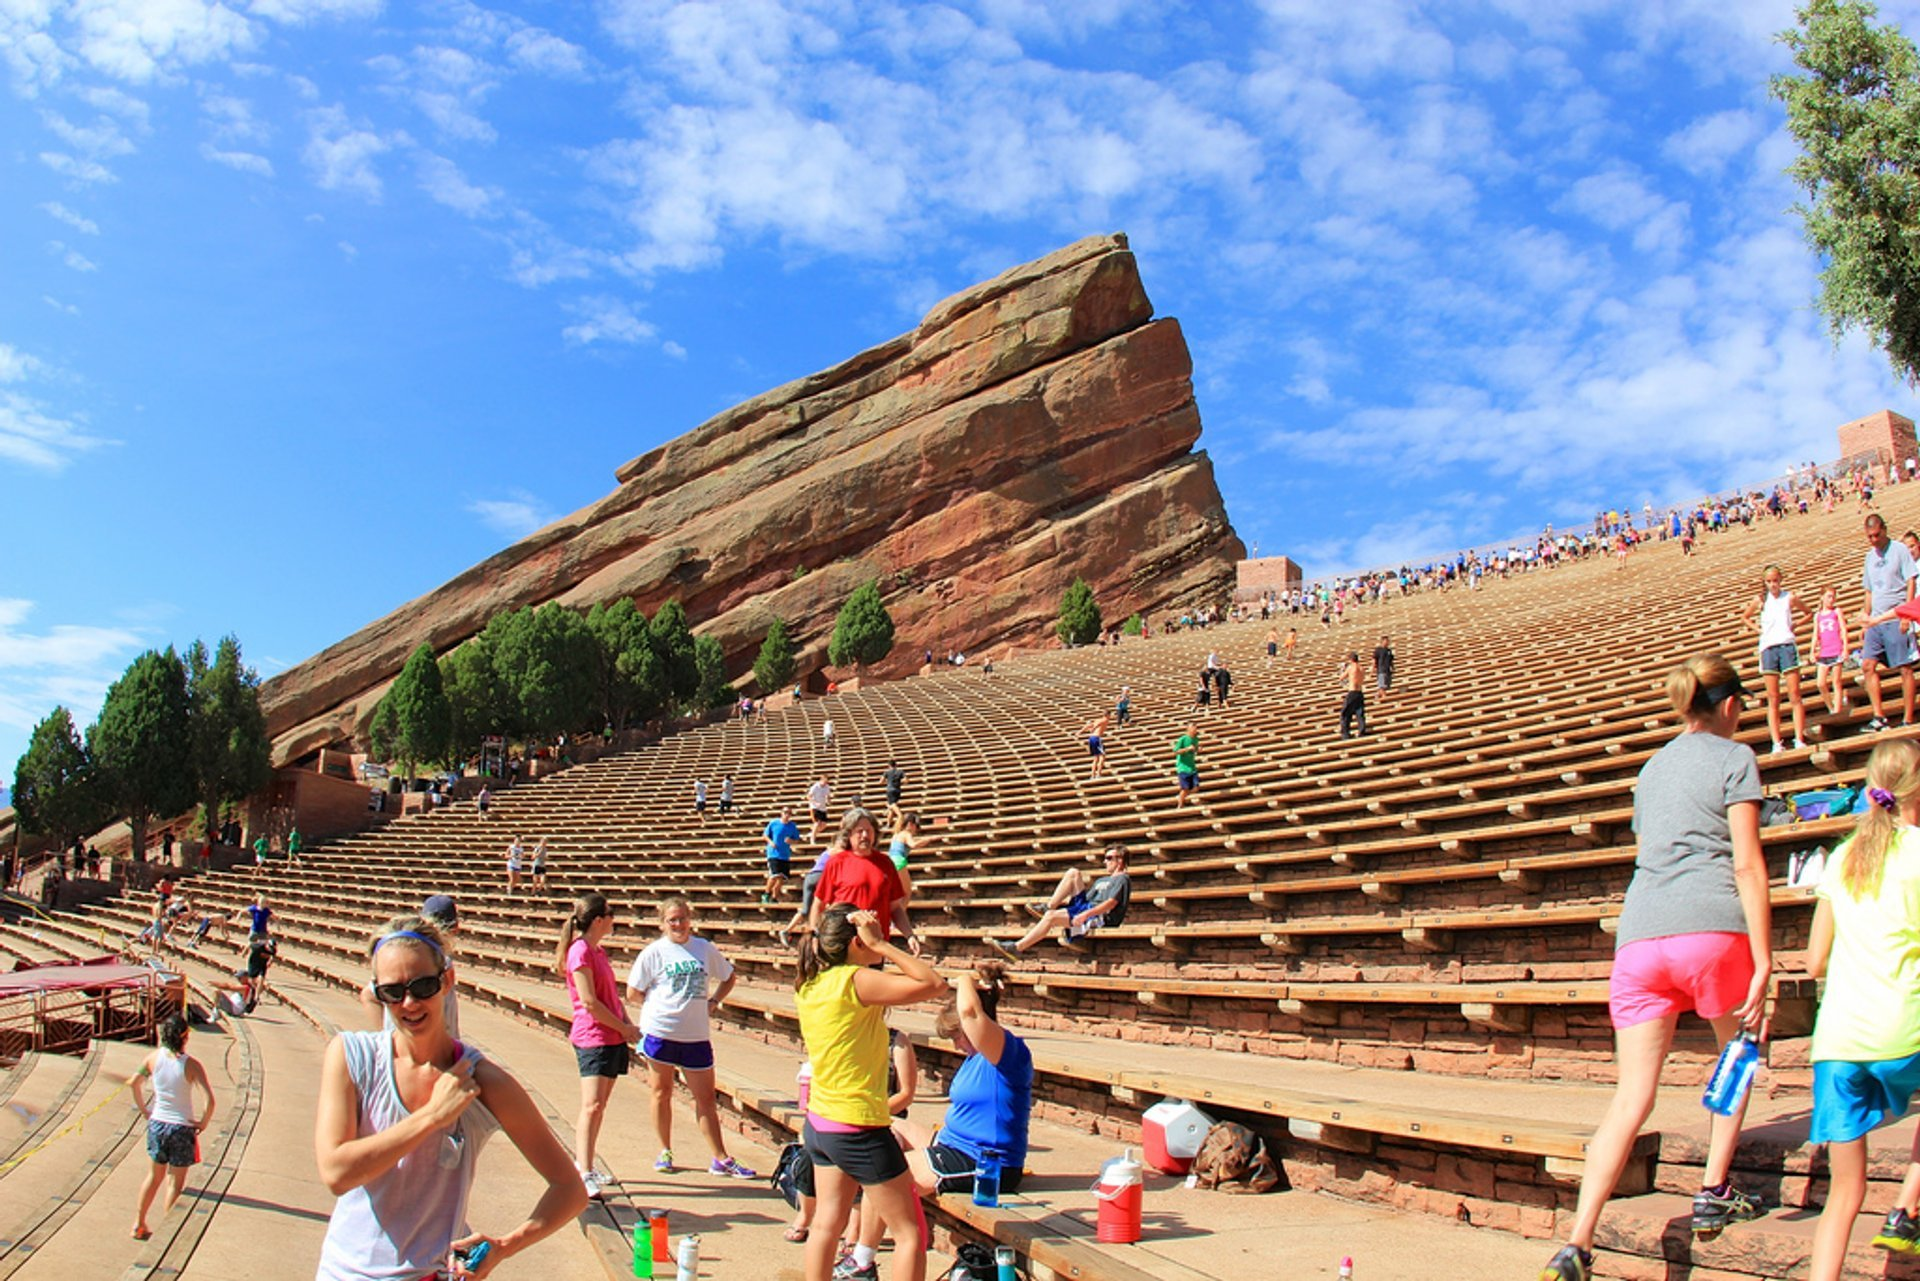 Concerts at Red Rocks Amphitheatre in Colorado 2019 - Best Time